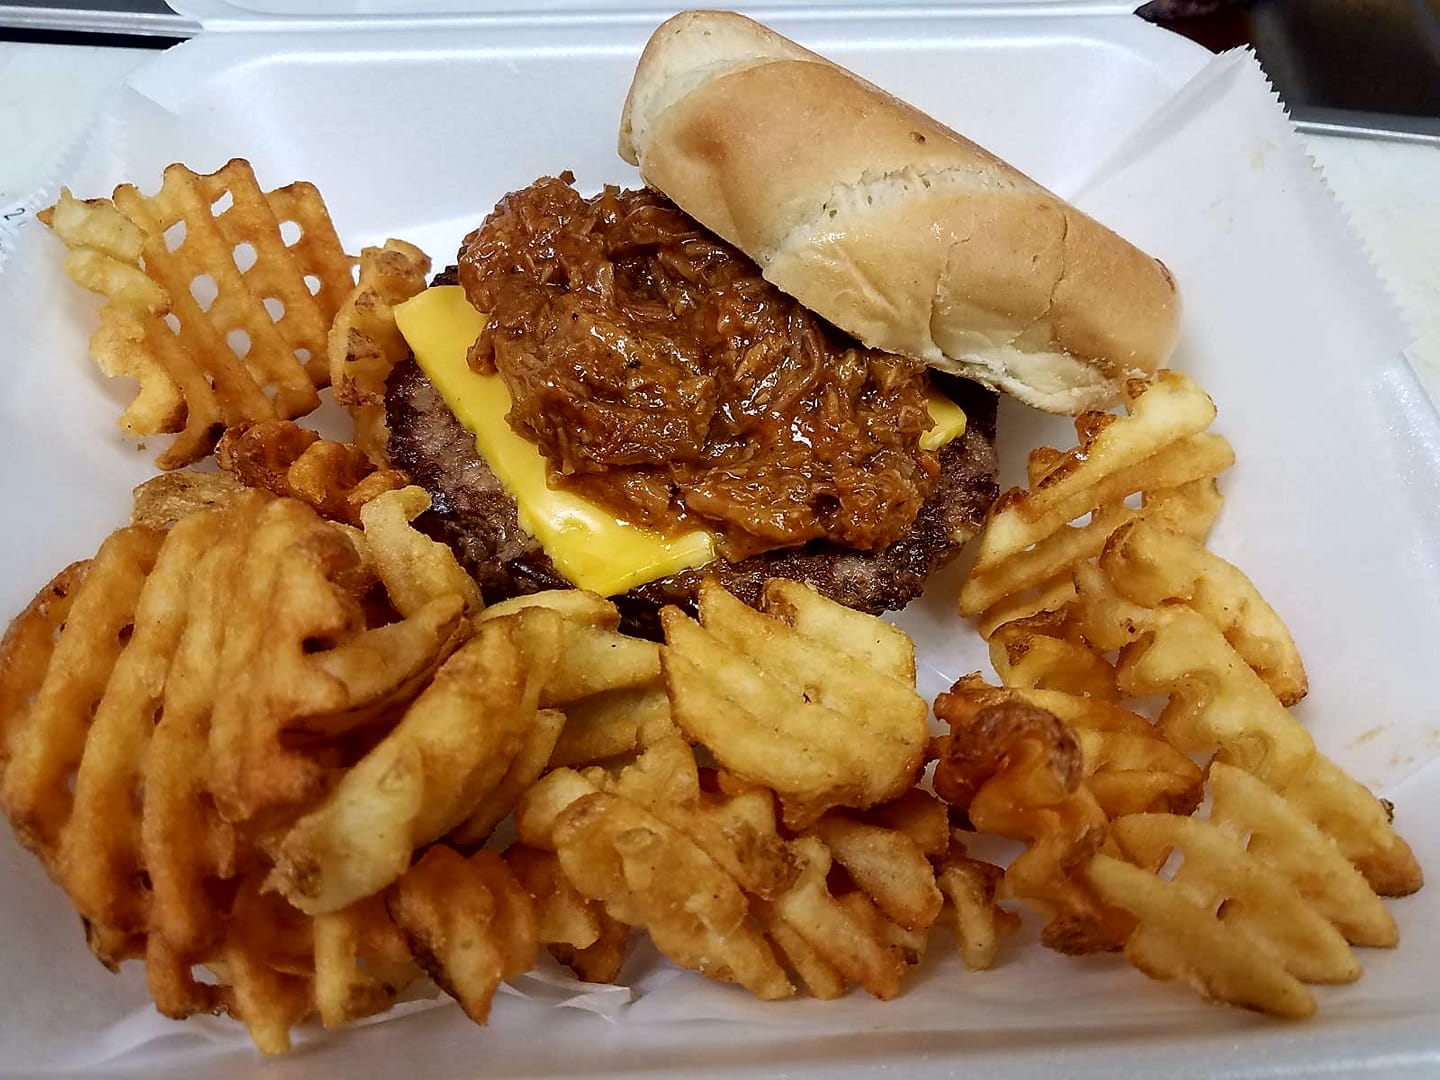 cheeseburger with pulled pork served with waffle fries